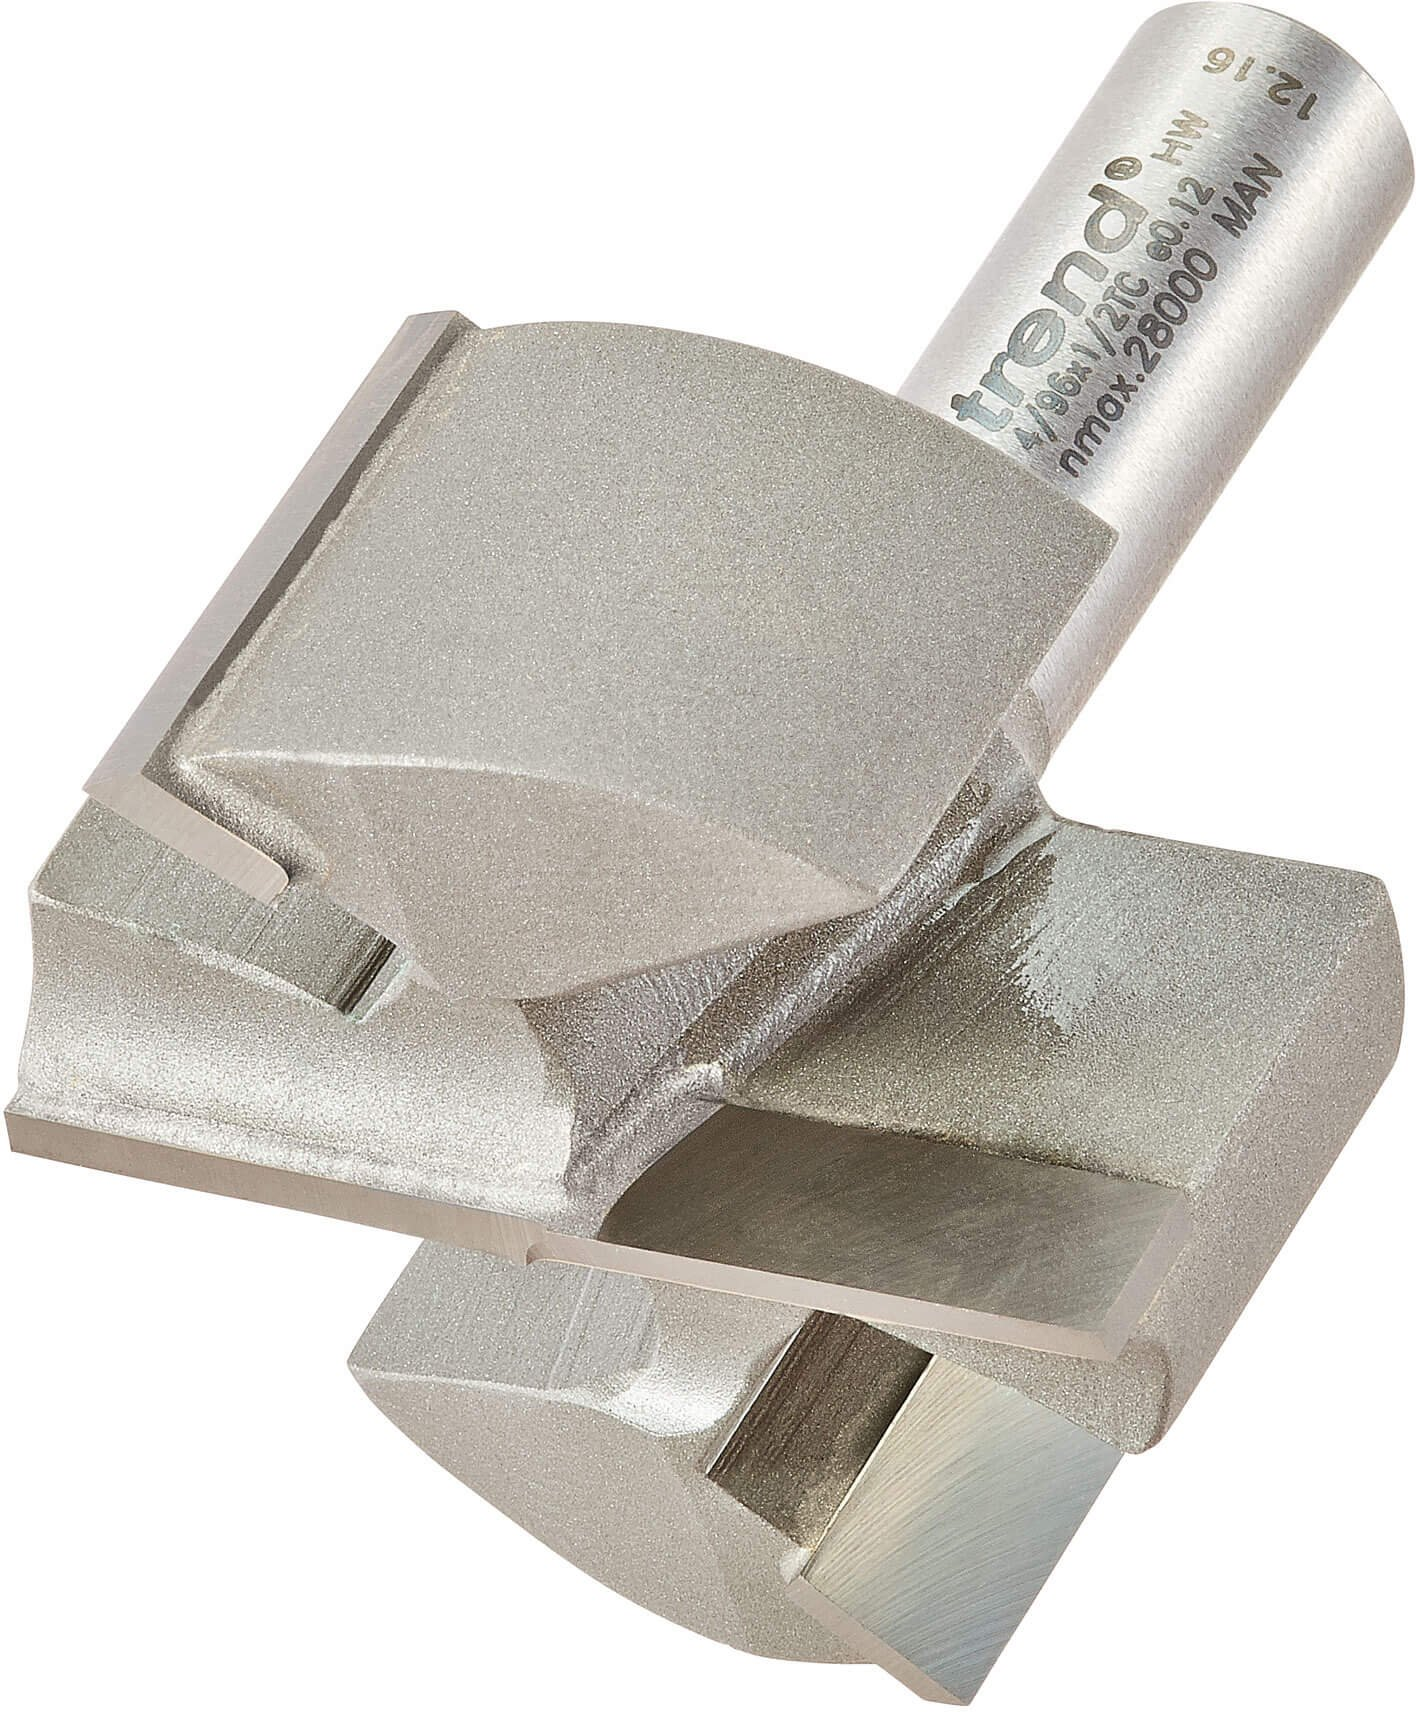 Trend Professional Two Flute Straight Router Cutter 50mm 25mm 1 2